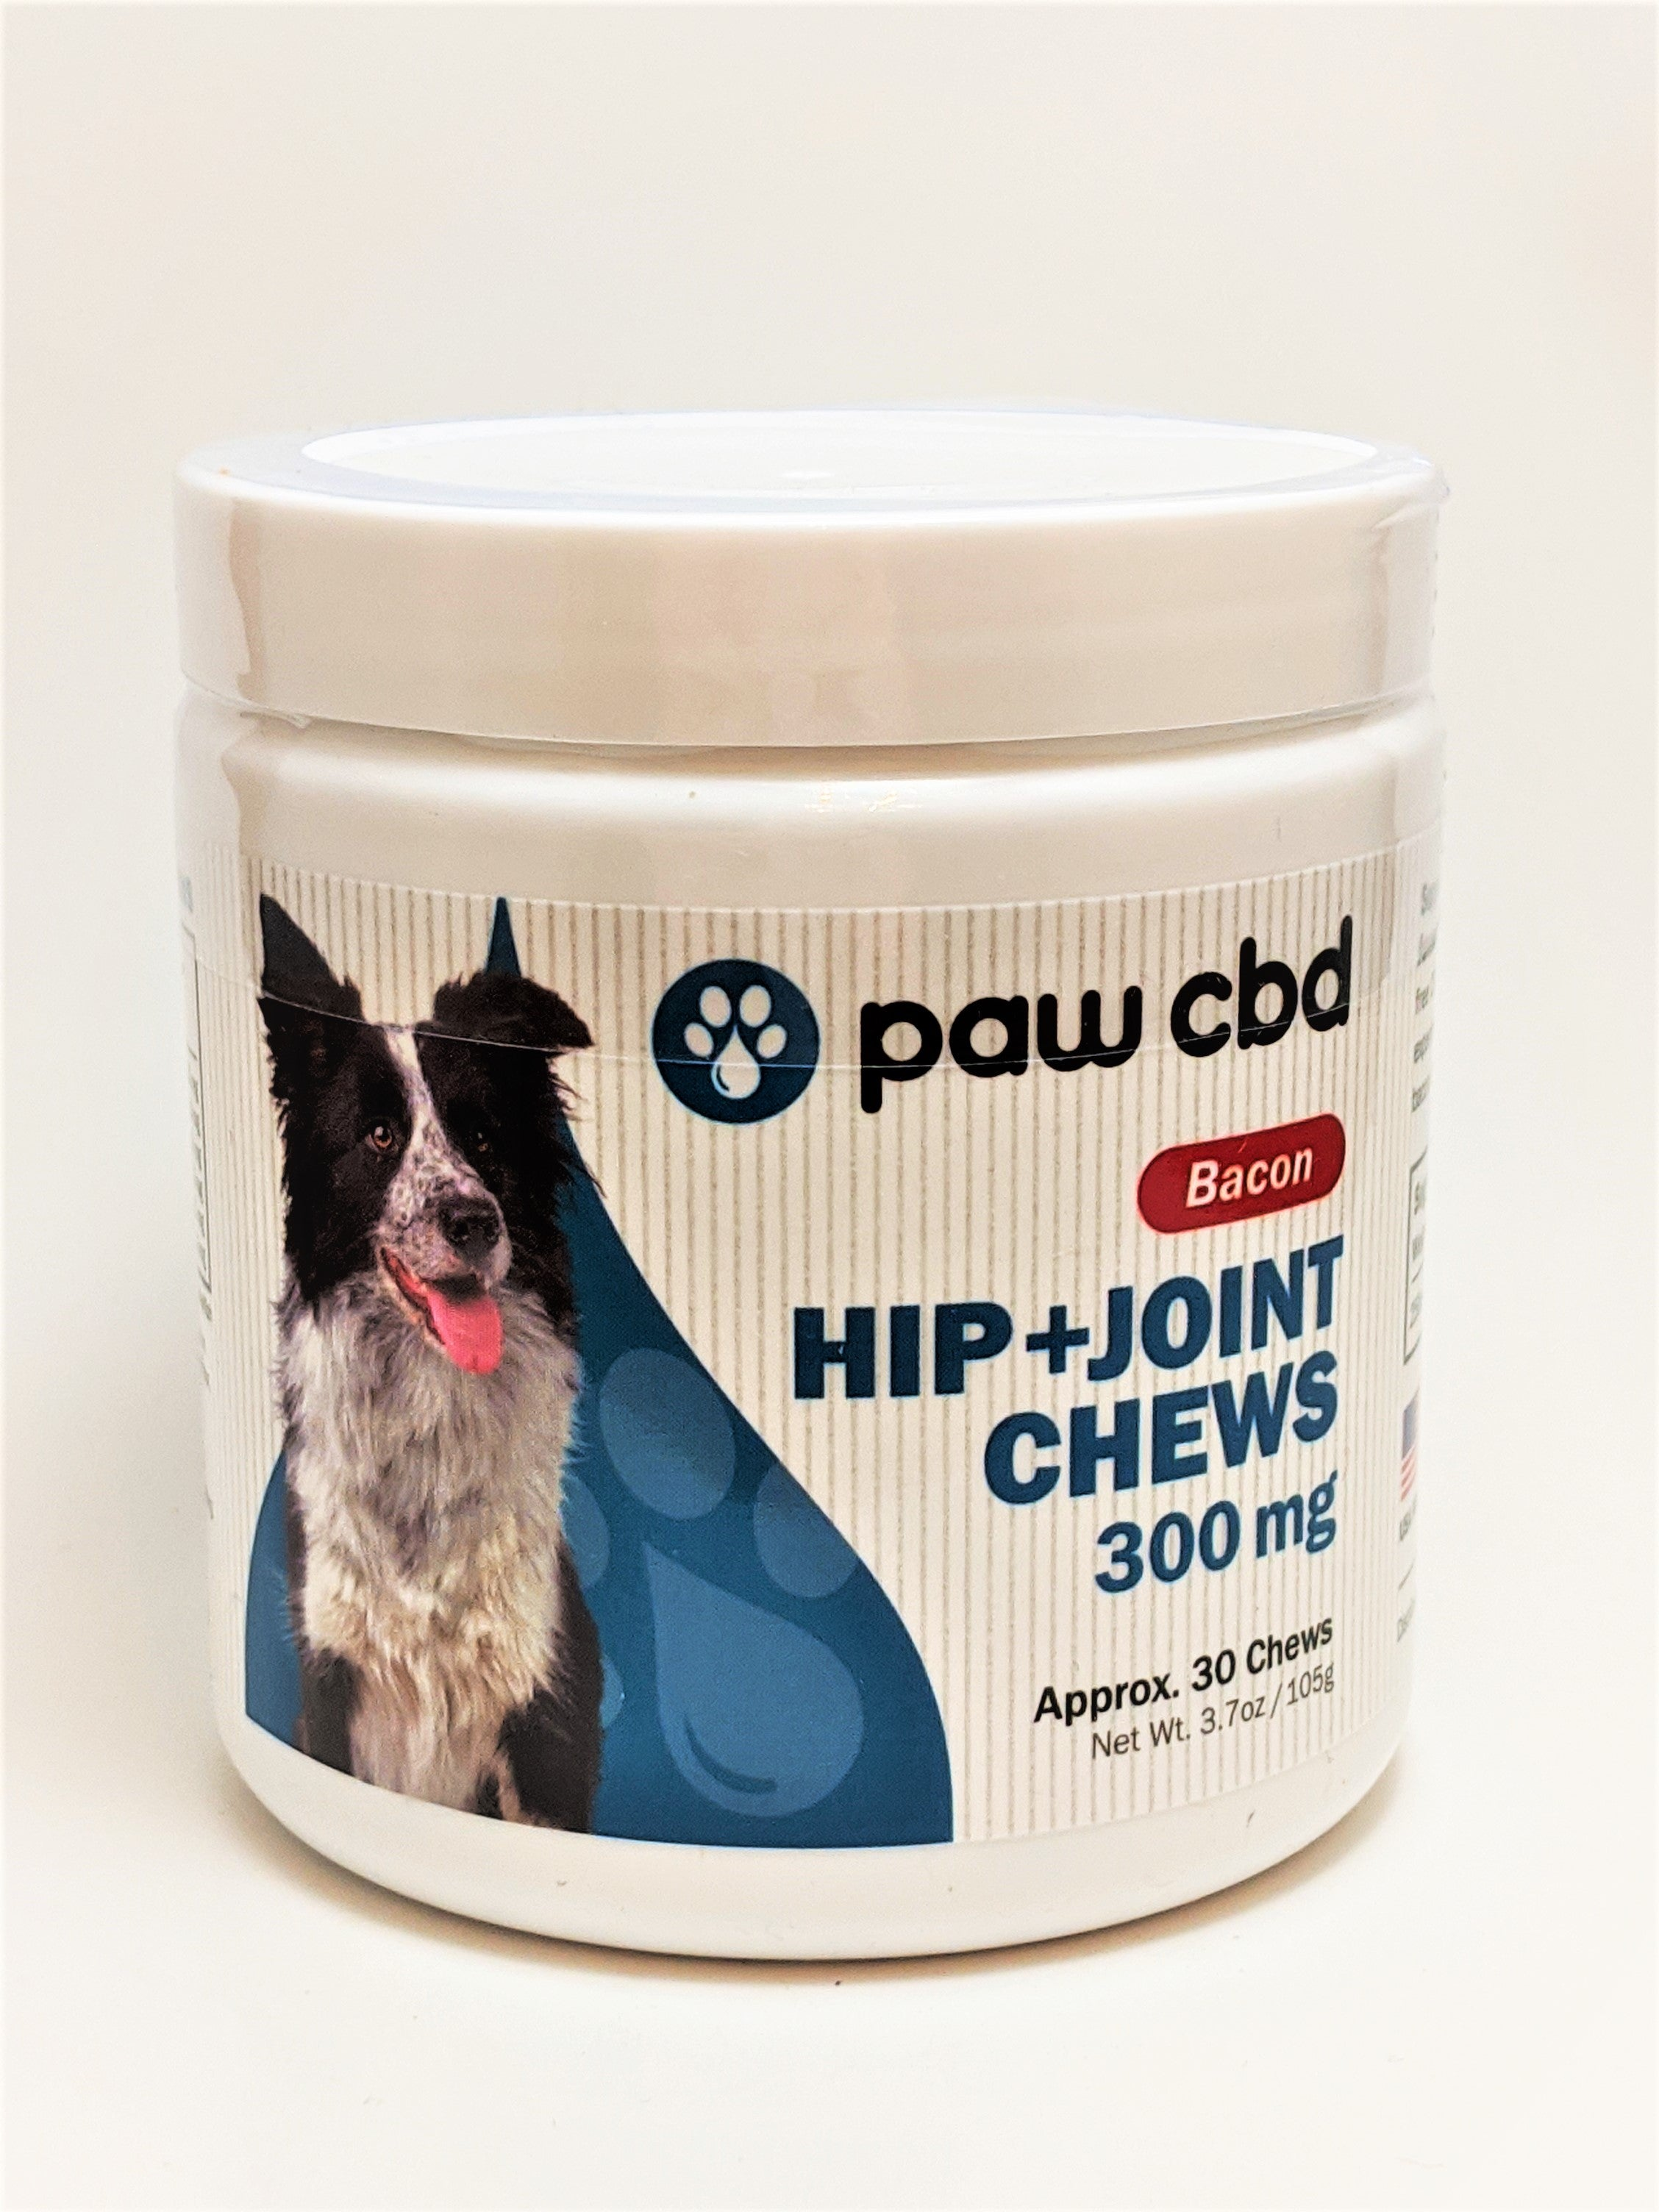 Paw CBD Hip and Joint Soft Chews 300 mg (Bacon) - CBD Central